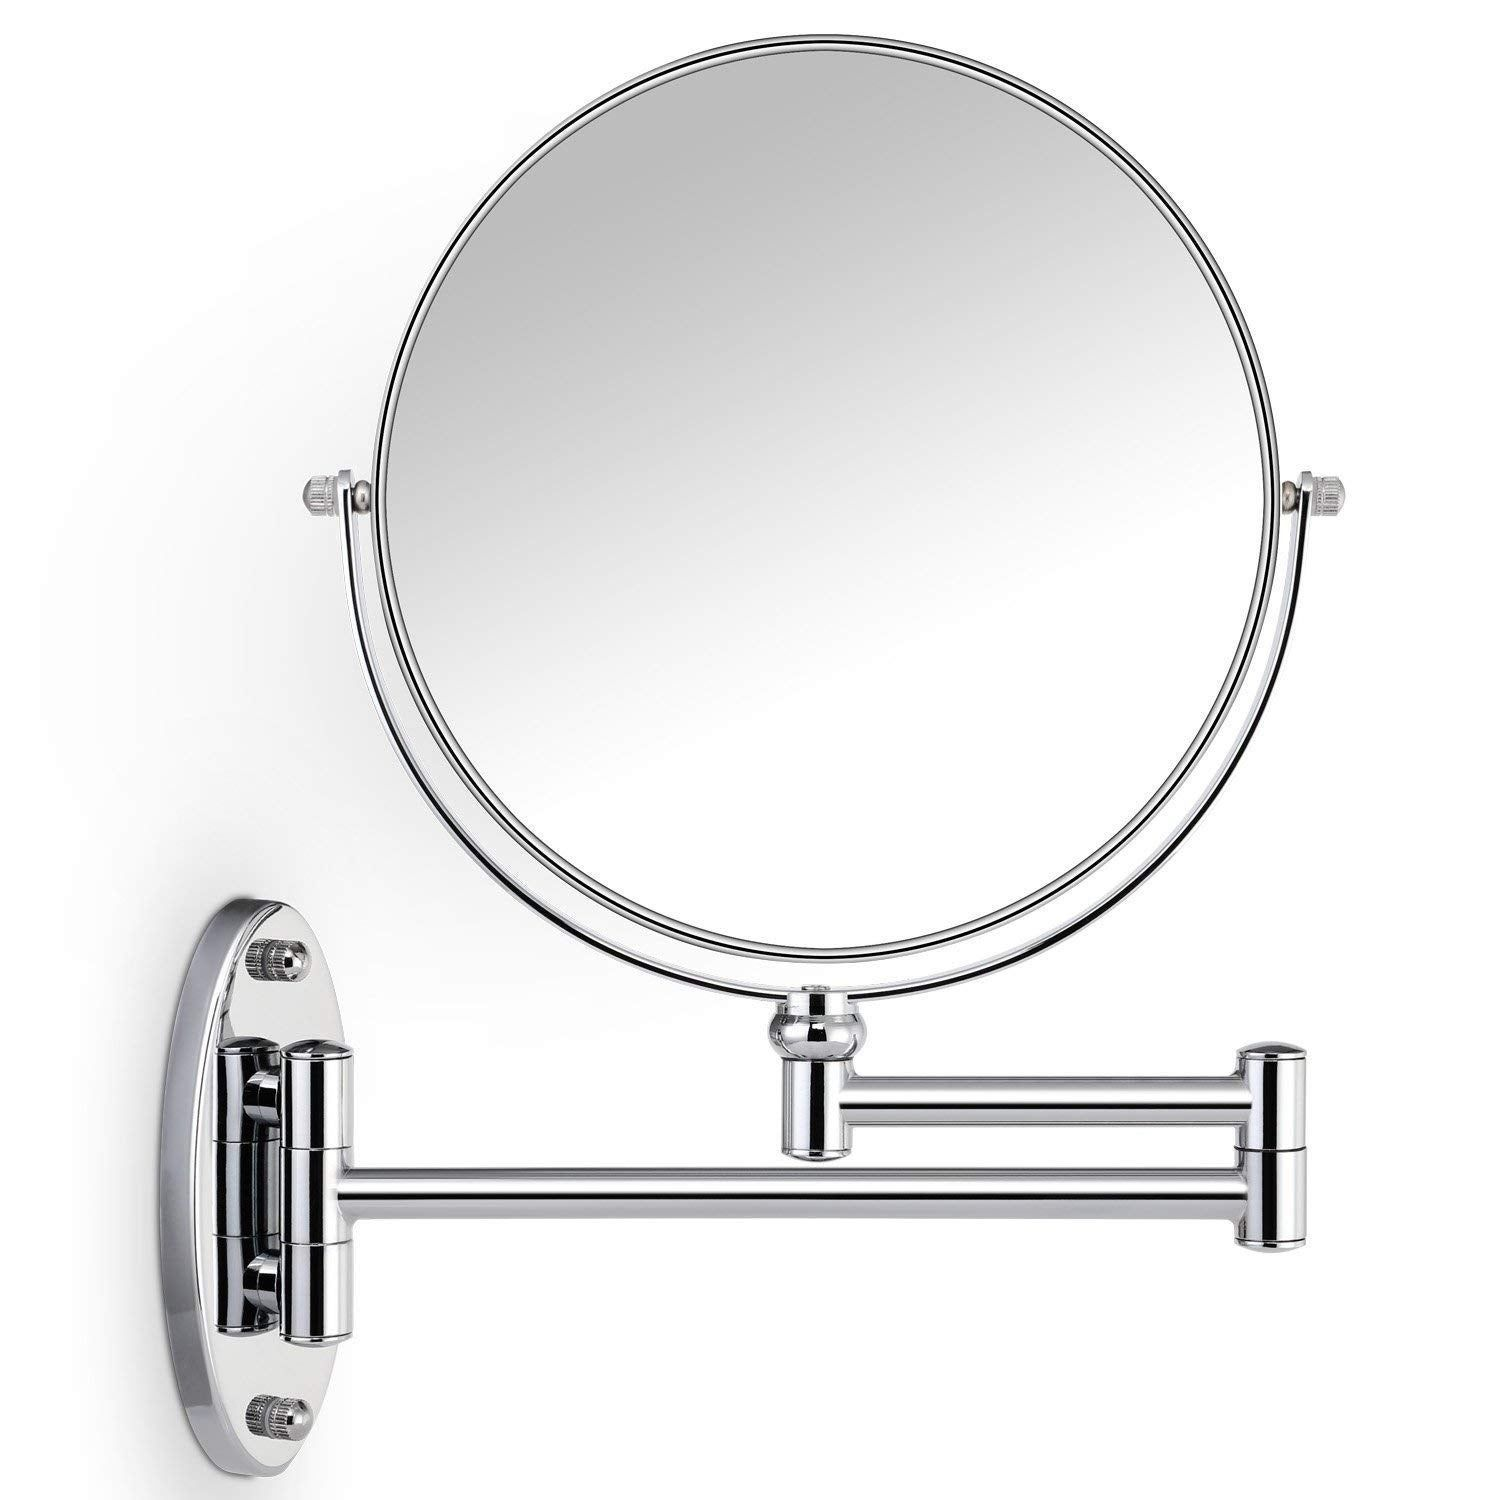 10x Magnifying Two Sided Wall Mount Makeup Mirror Wall Mounted Makeup Mirror Mirror Magnifying Mirror